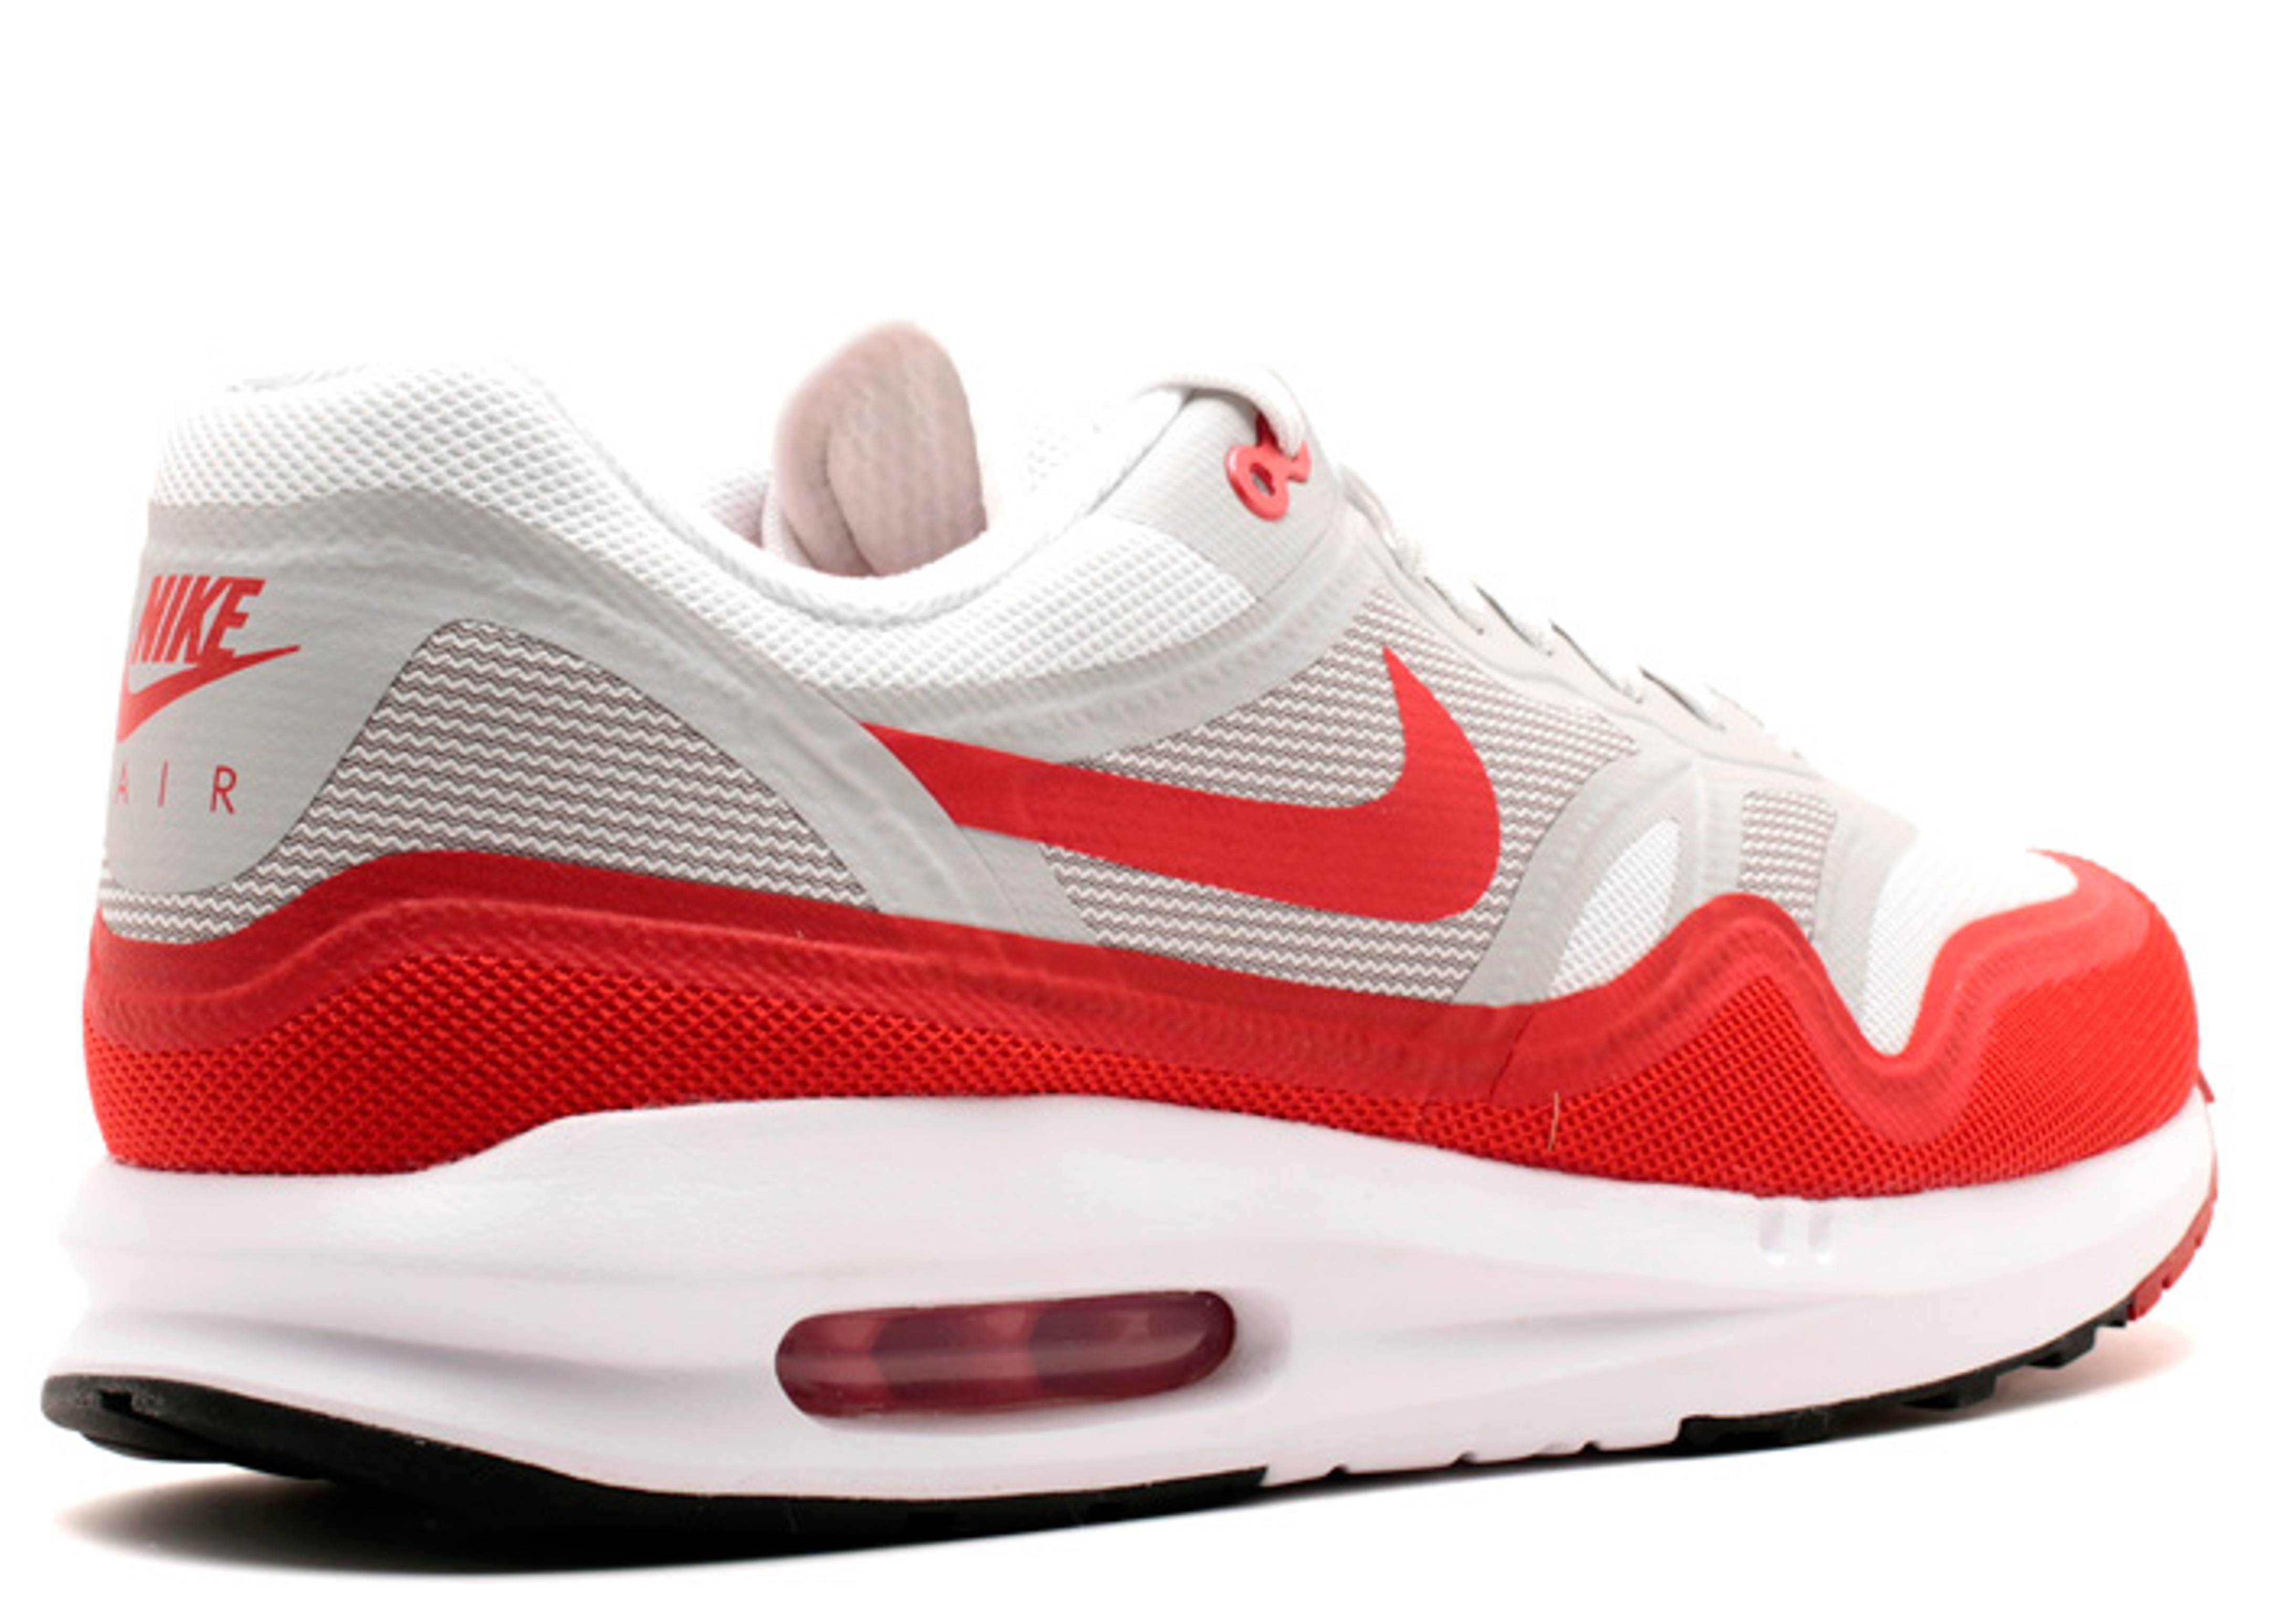 air max lunar 1 white challenge red neutral grey chlln. Black Bedroom Furniture Sets. Home Design Ideas